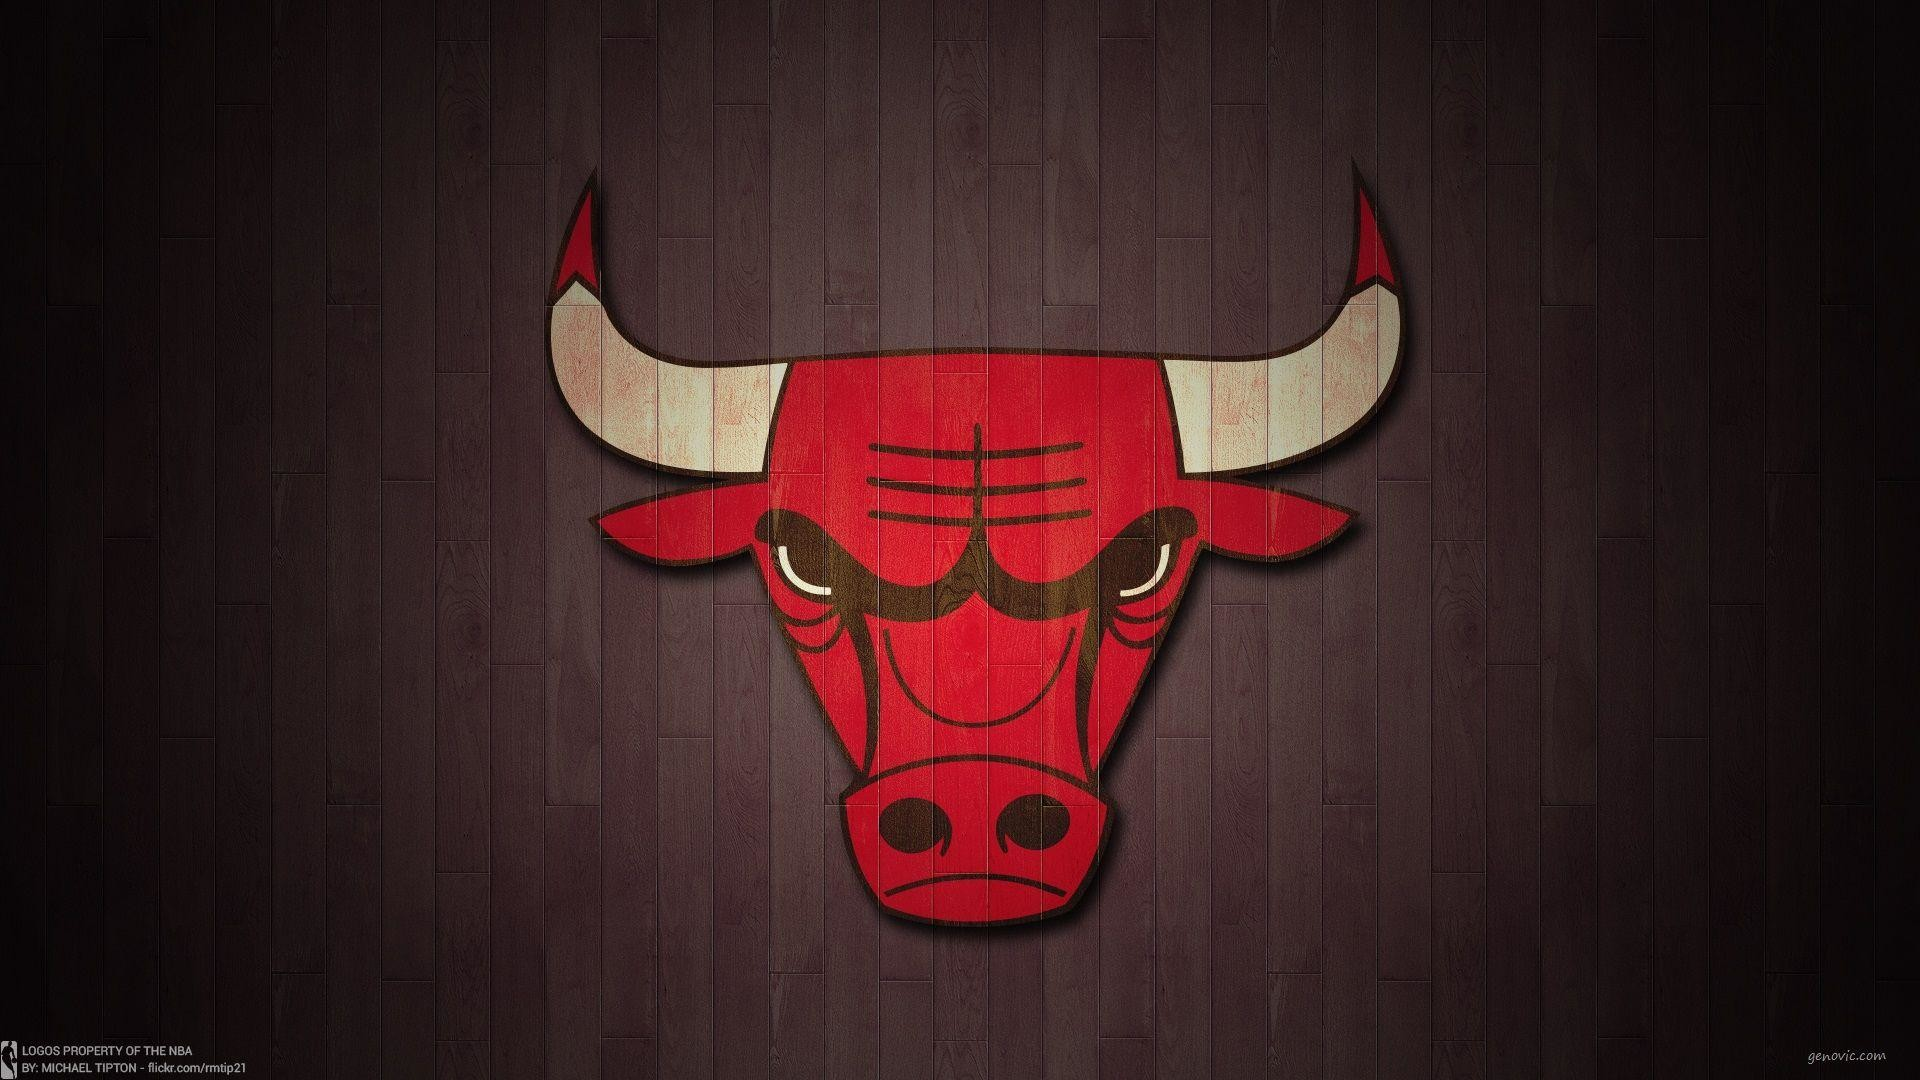 1920x1080 - Chicago Bulls HD 26